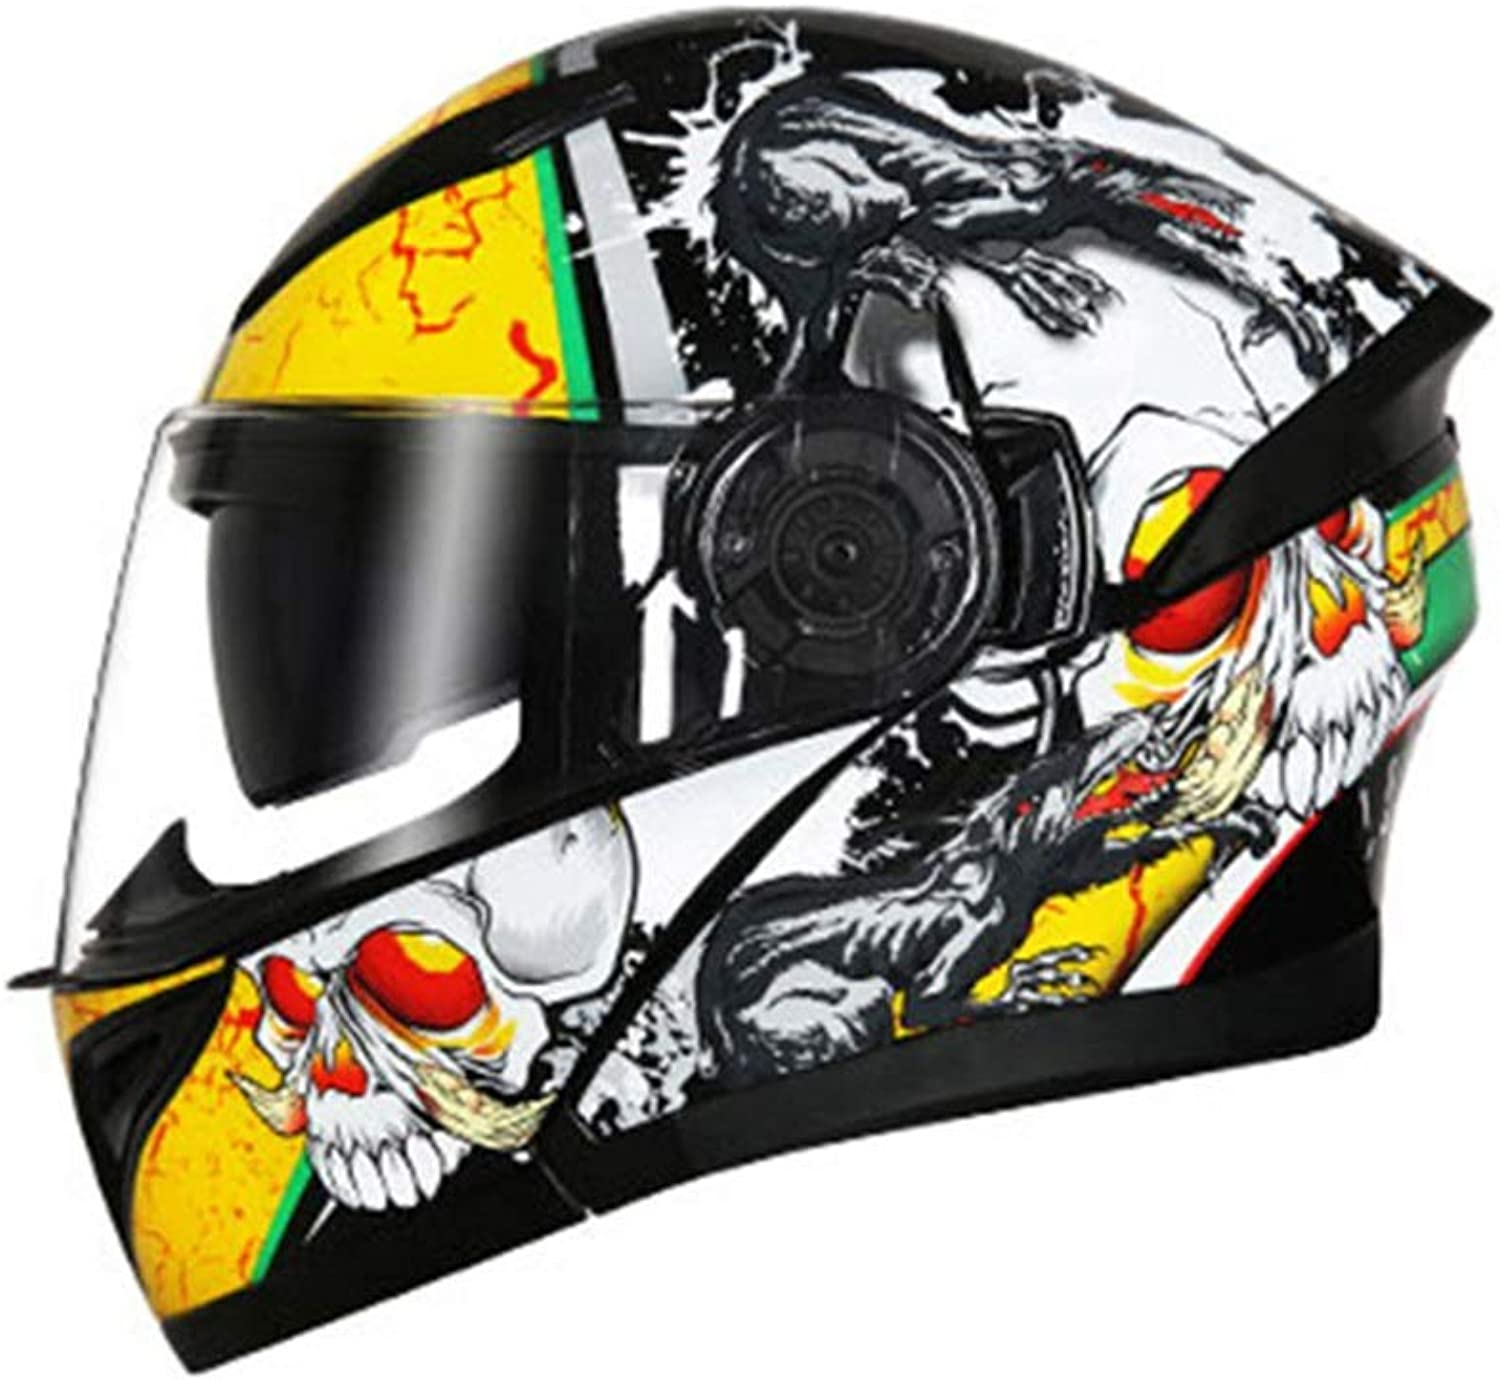 Songlin@yuan Double Mirror Open Face Helmet Men's Four Seasons Universal Helmet Electric Motorcycle Handsome Helmet Full Cover blueeetooth Ladies Full Face Helmet  Black and White Yellow  Personality